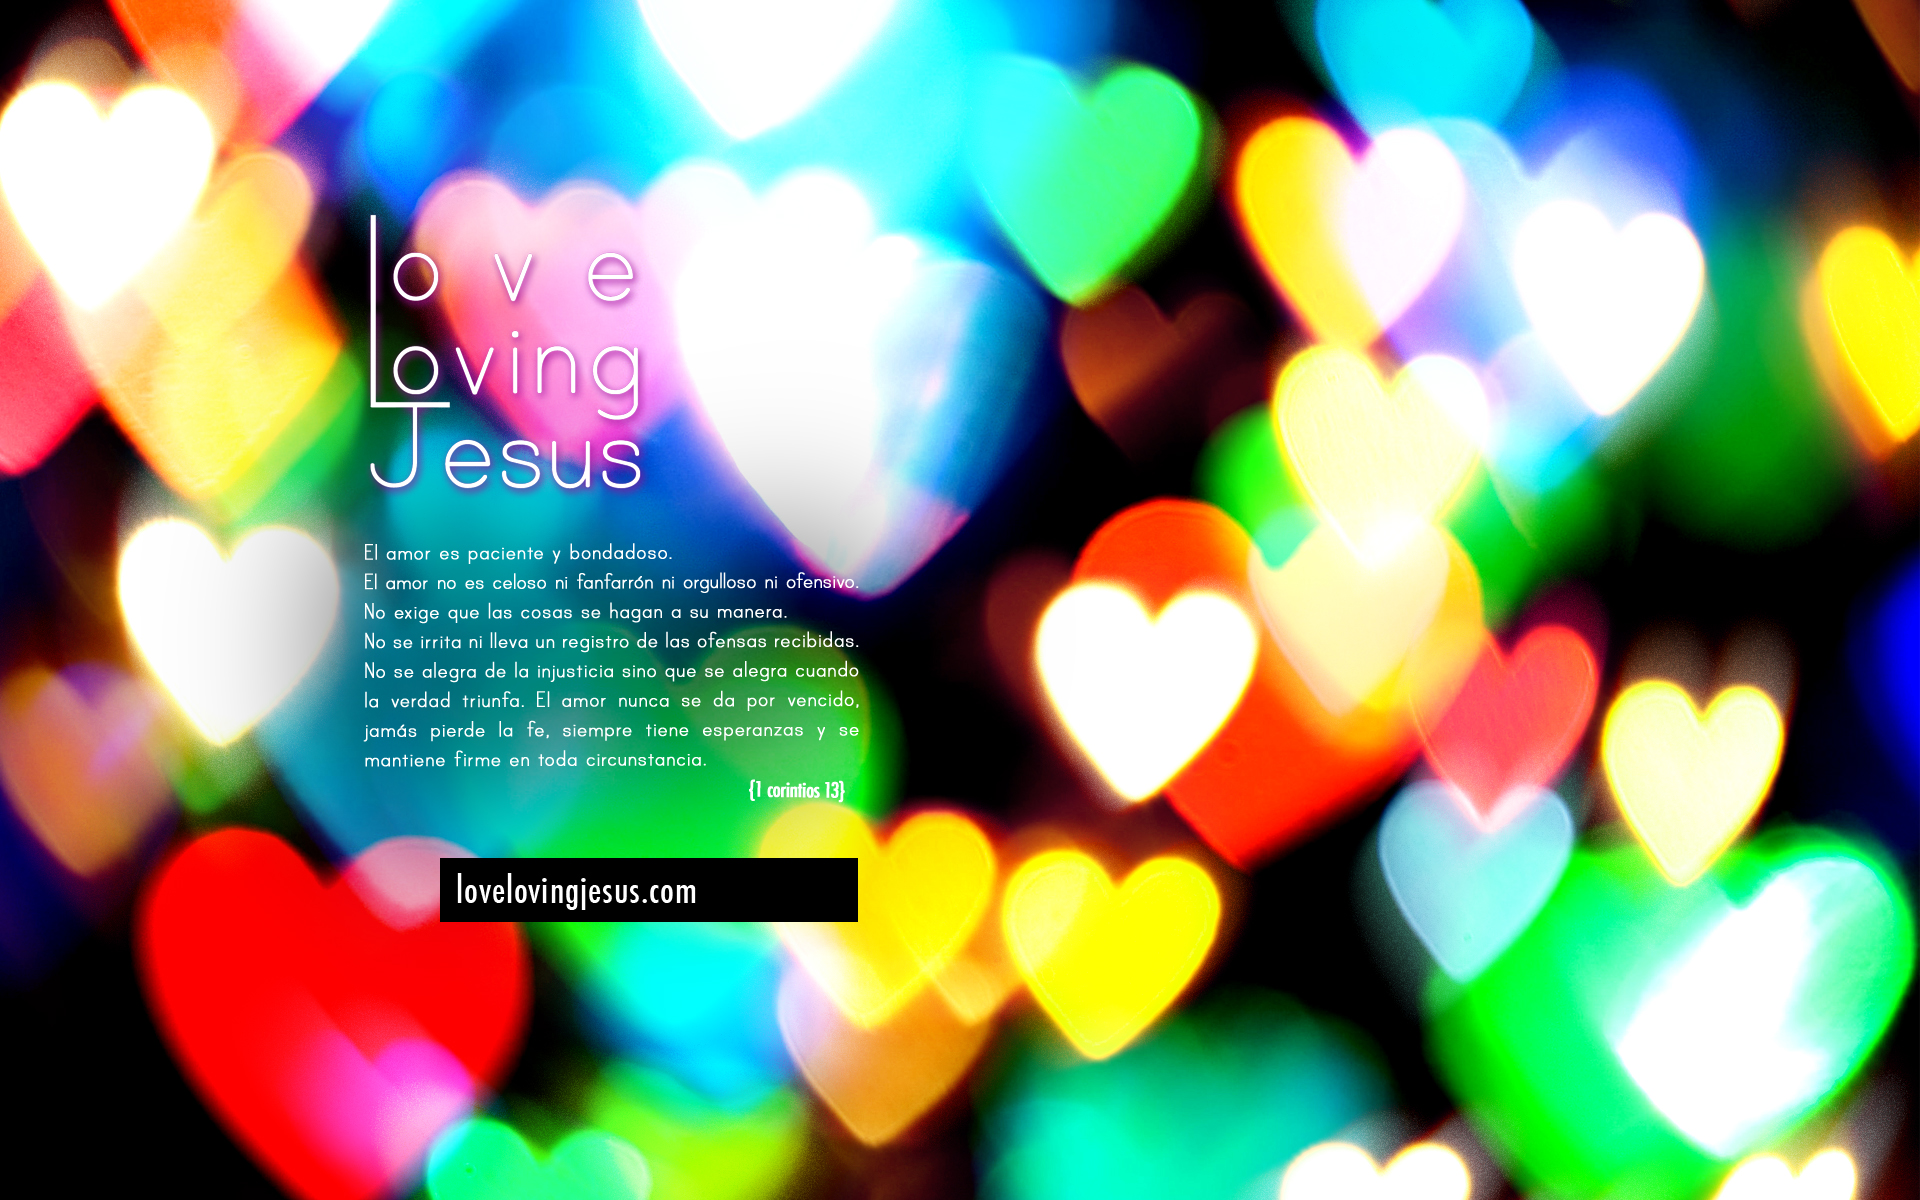 Love Vale Wallpapers : Love Loving Jesus! Wallpaper 14 de Febrero